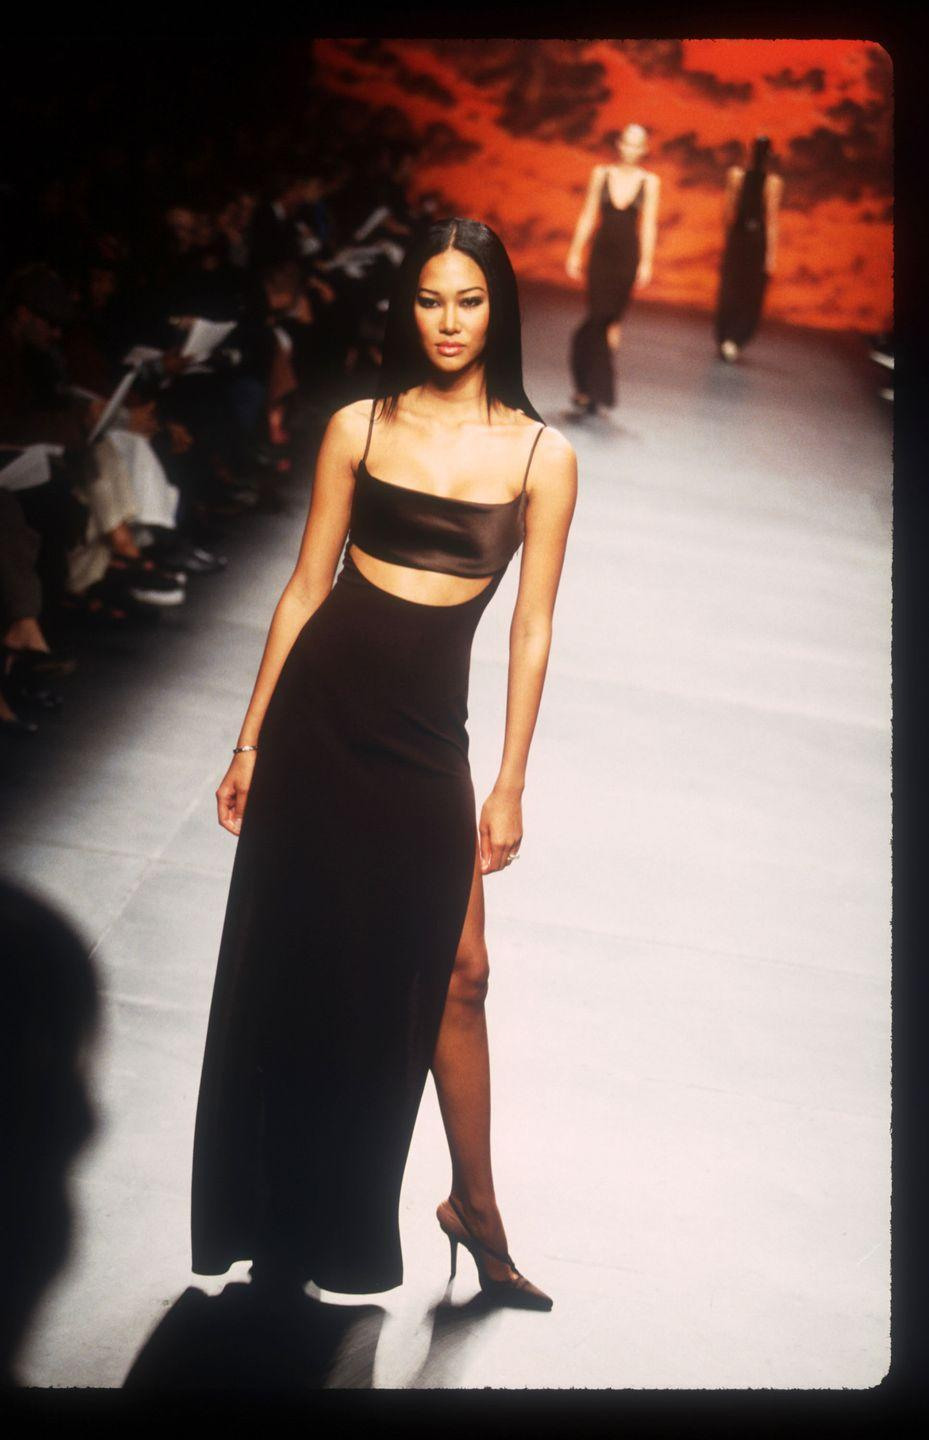 """<p>At the tender age of 13, Simmons was signed by Karl Lagerfeld at Chanel, who regarded her as the """"Face of the 21st Century."""" Brands like Fendi, Valentino, and Yves Saint Laurent also took notice. Then, after marrying entrepreneur Russell Simmons, she founded Baby Phat—eventually becoming the president of its parent company, Phat Farm, which amassed $265 million in profits in 2002. She also created the Kimora Lee Simmons Scholarship Fund and is involved in a number of charities. </p>"""